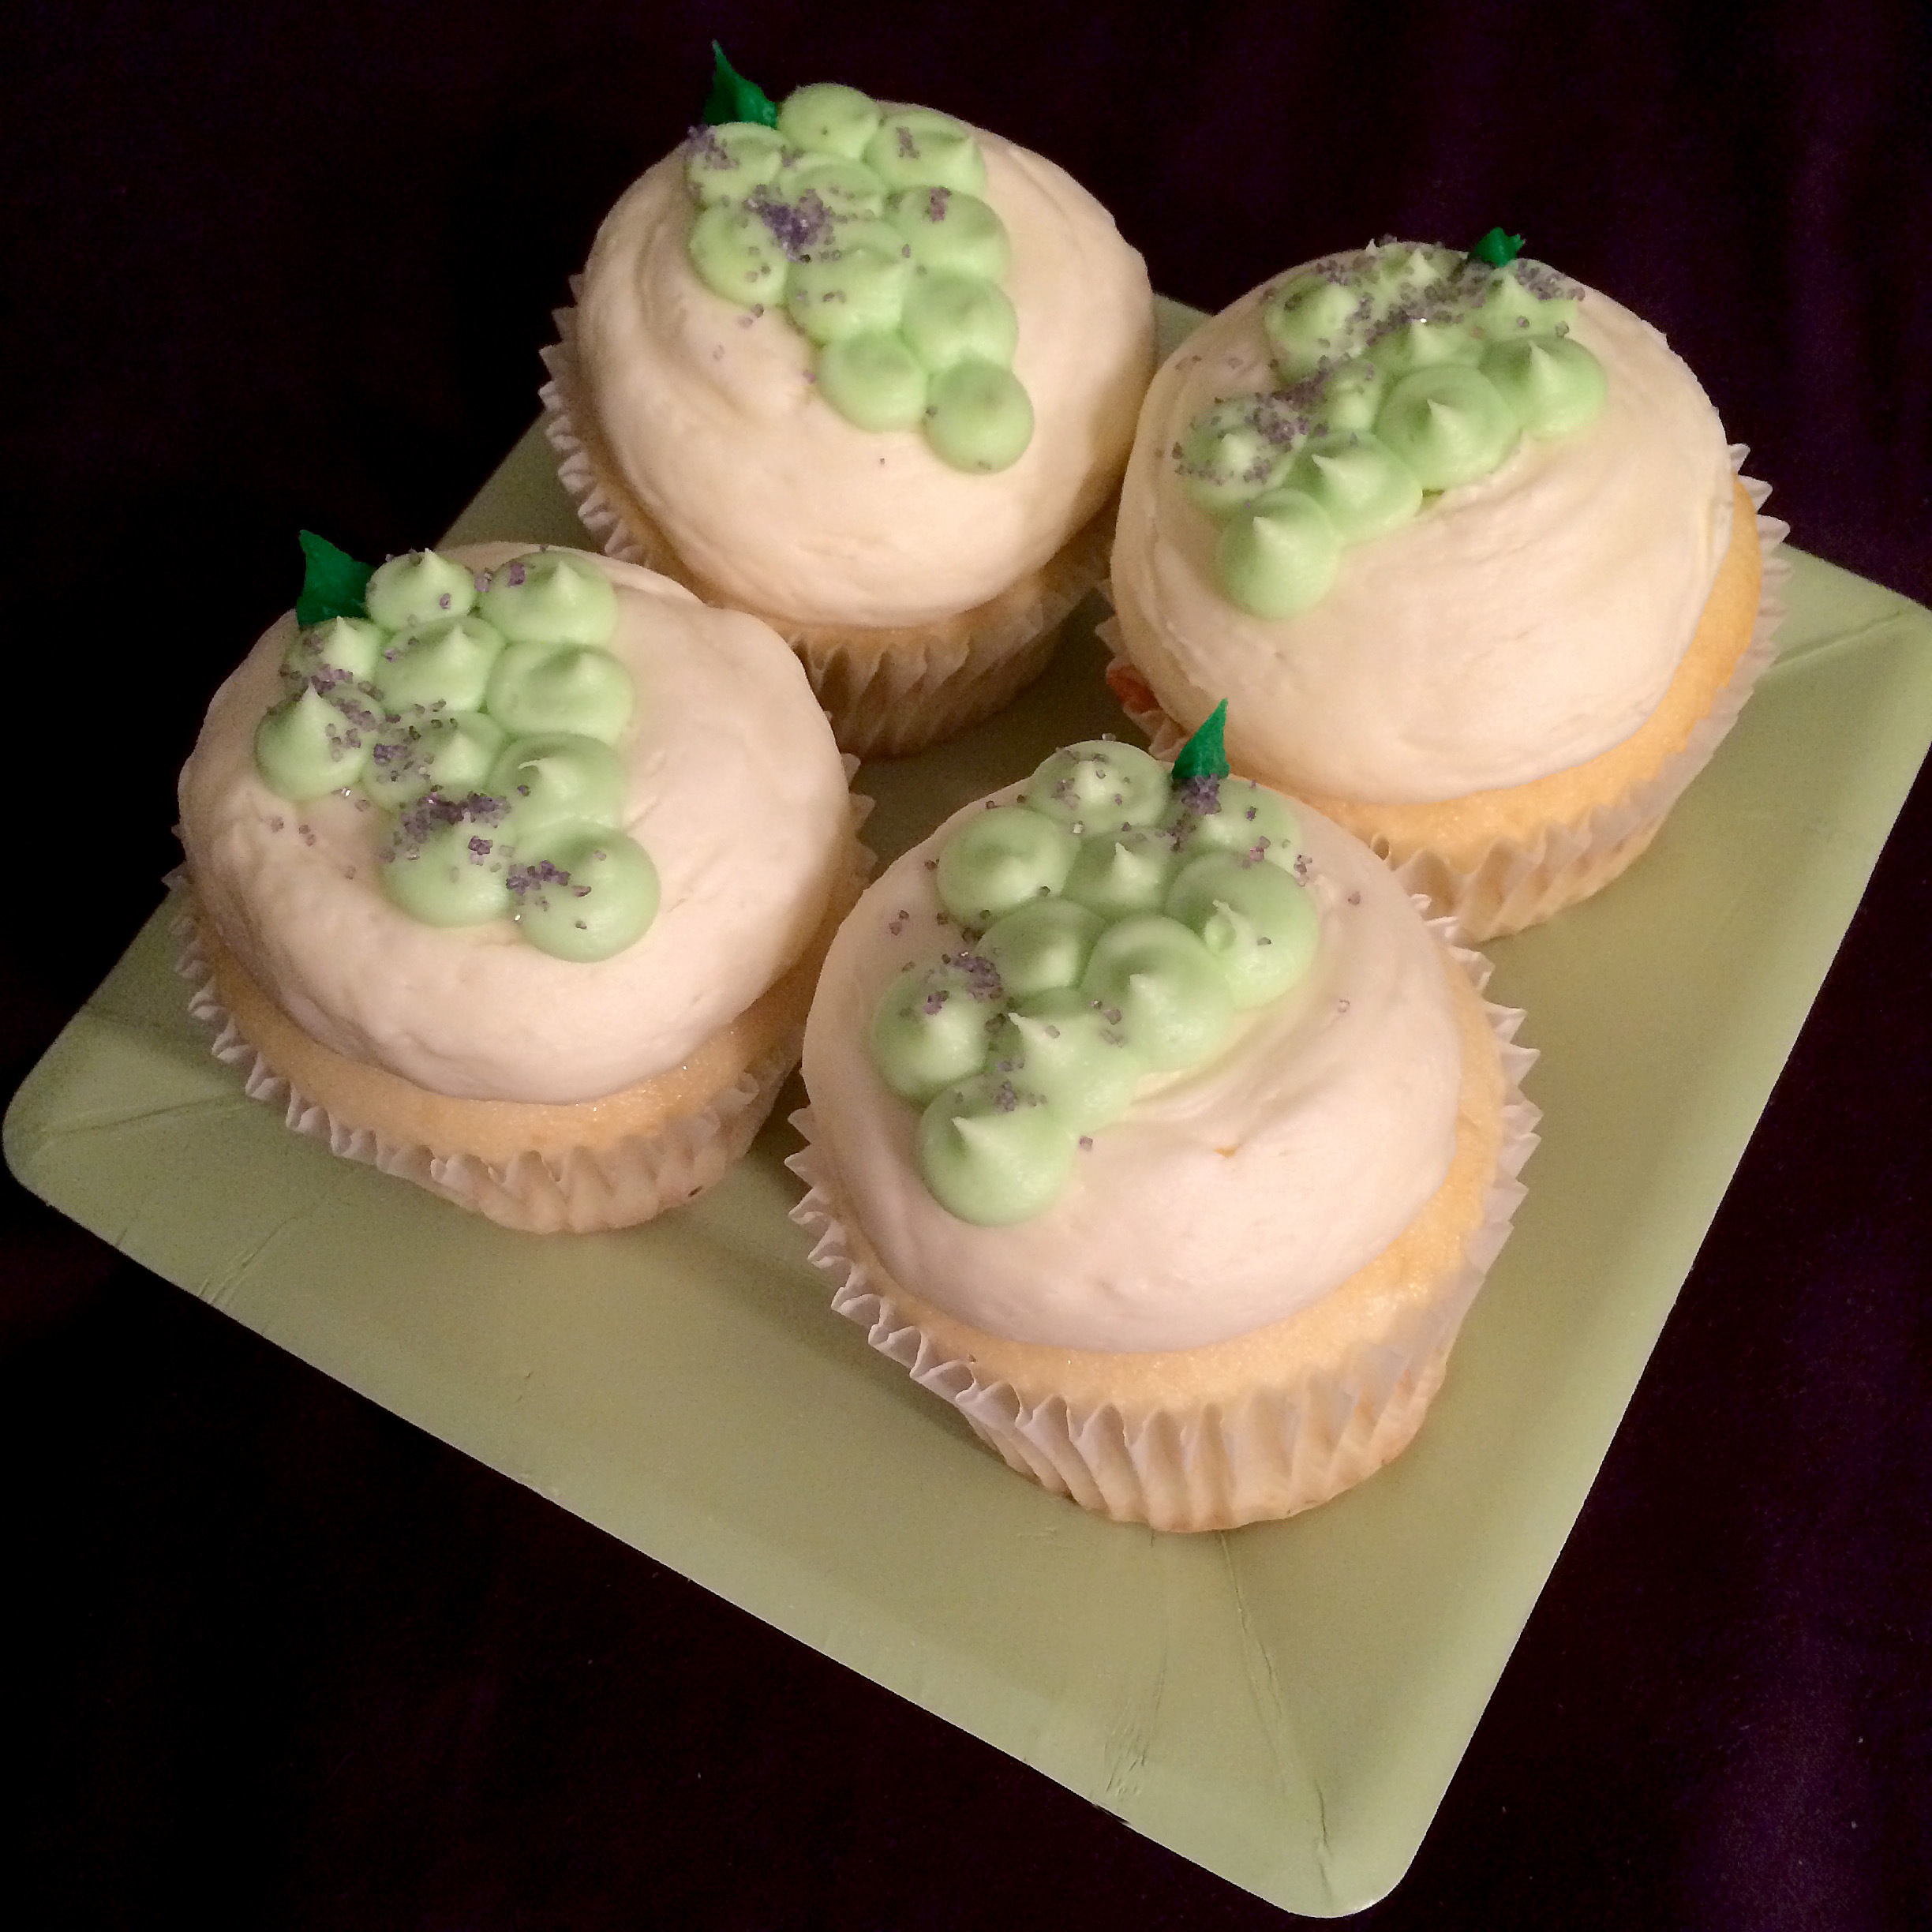 Indiana Traminette Cupcakes